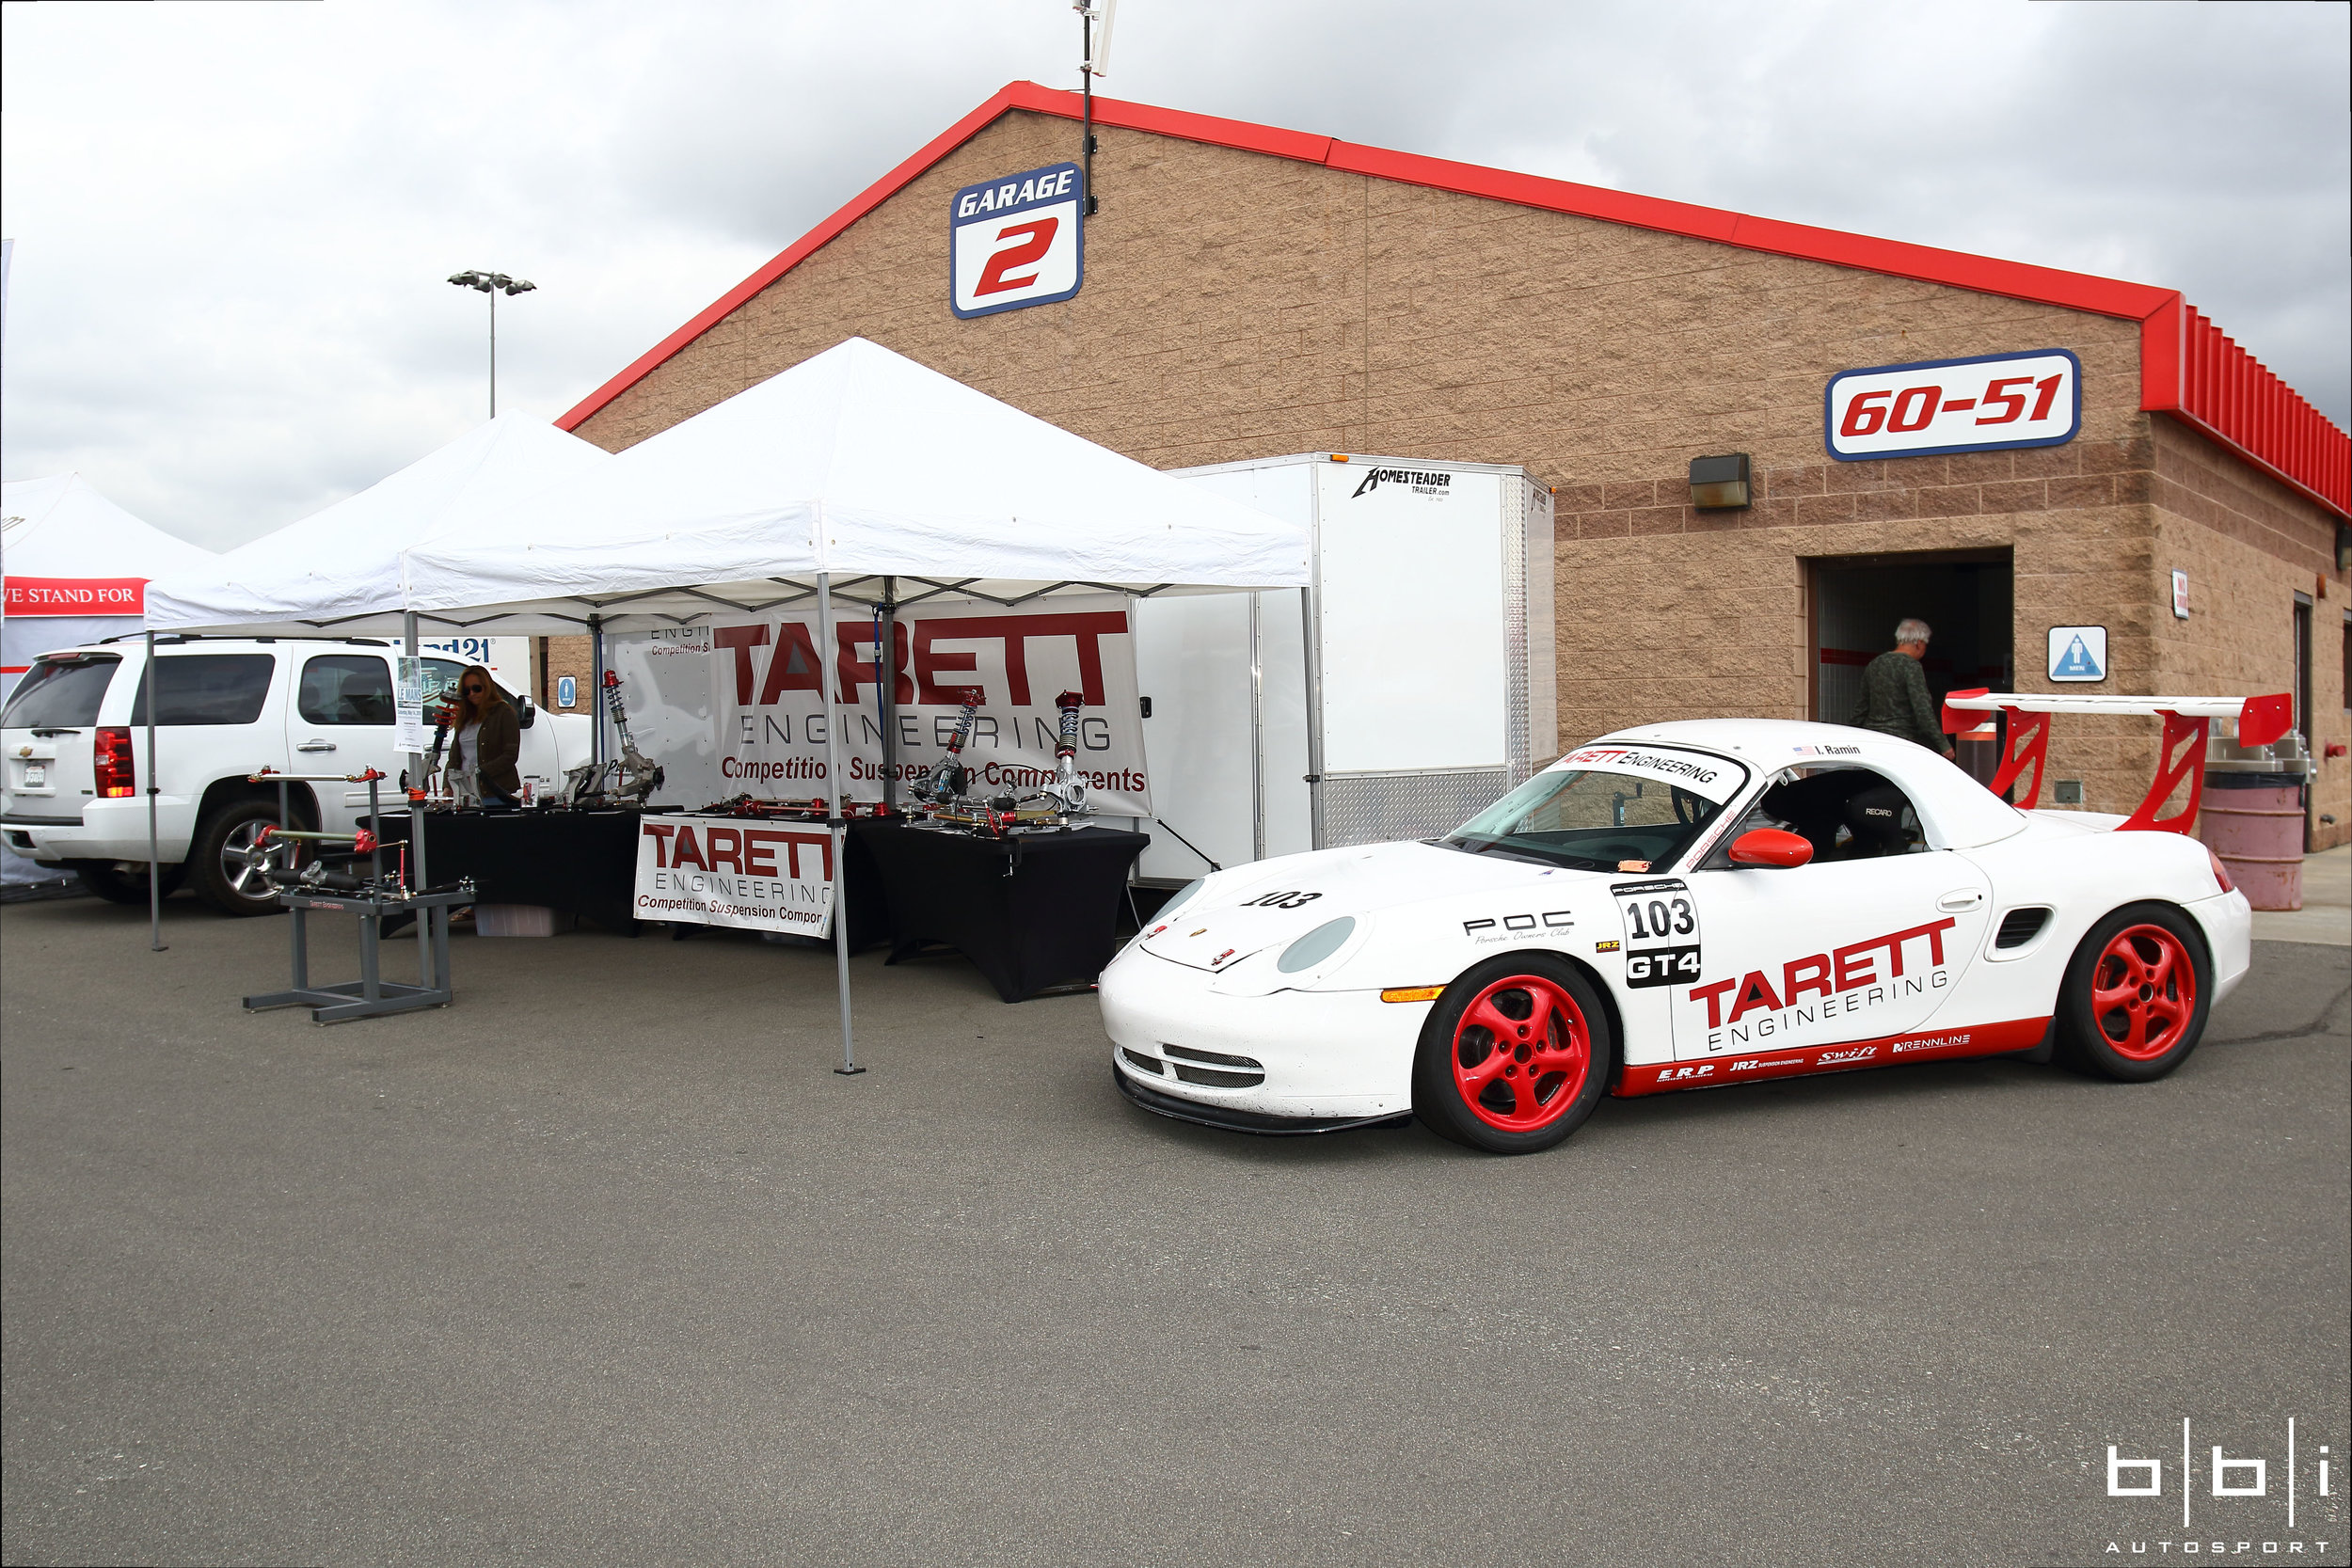 Stopped by to visit our good friends over at their Tarret Engineering booth. Don't underestimate their Porsche Boxter... Upgraded with Tarrett, ERP, JRZ, Swift and Rennline components, this little track monster will give any Porsche a run for their money.